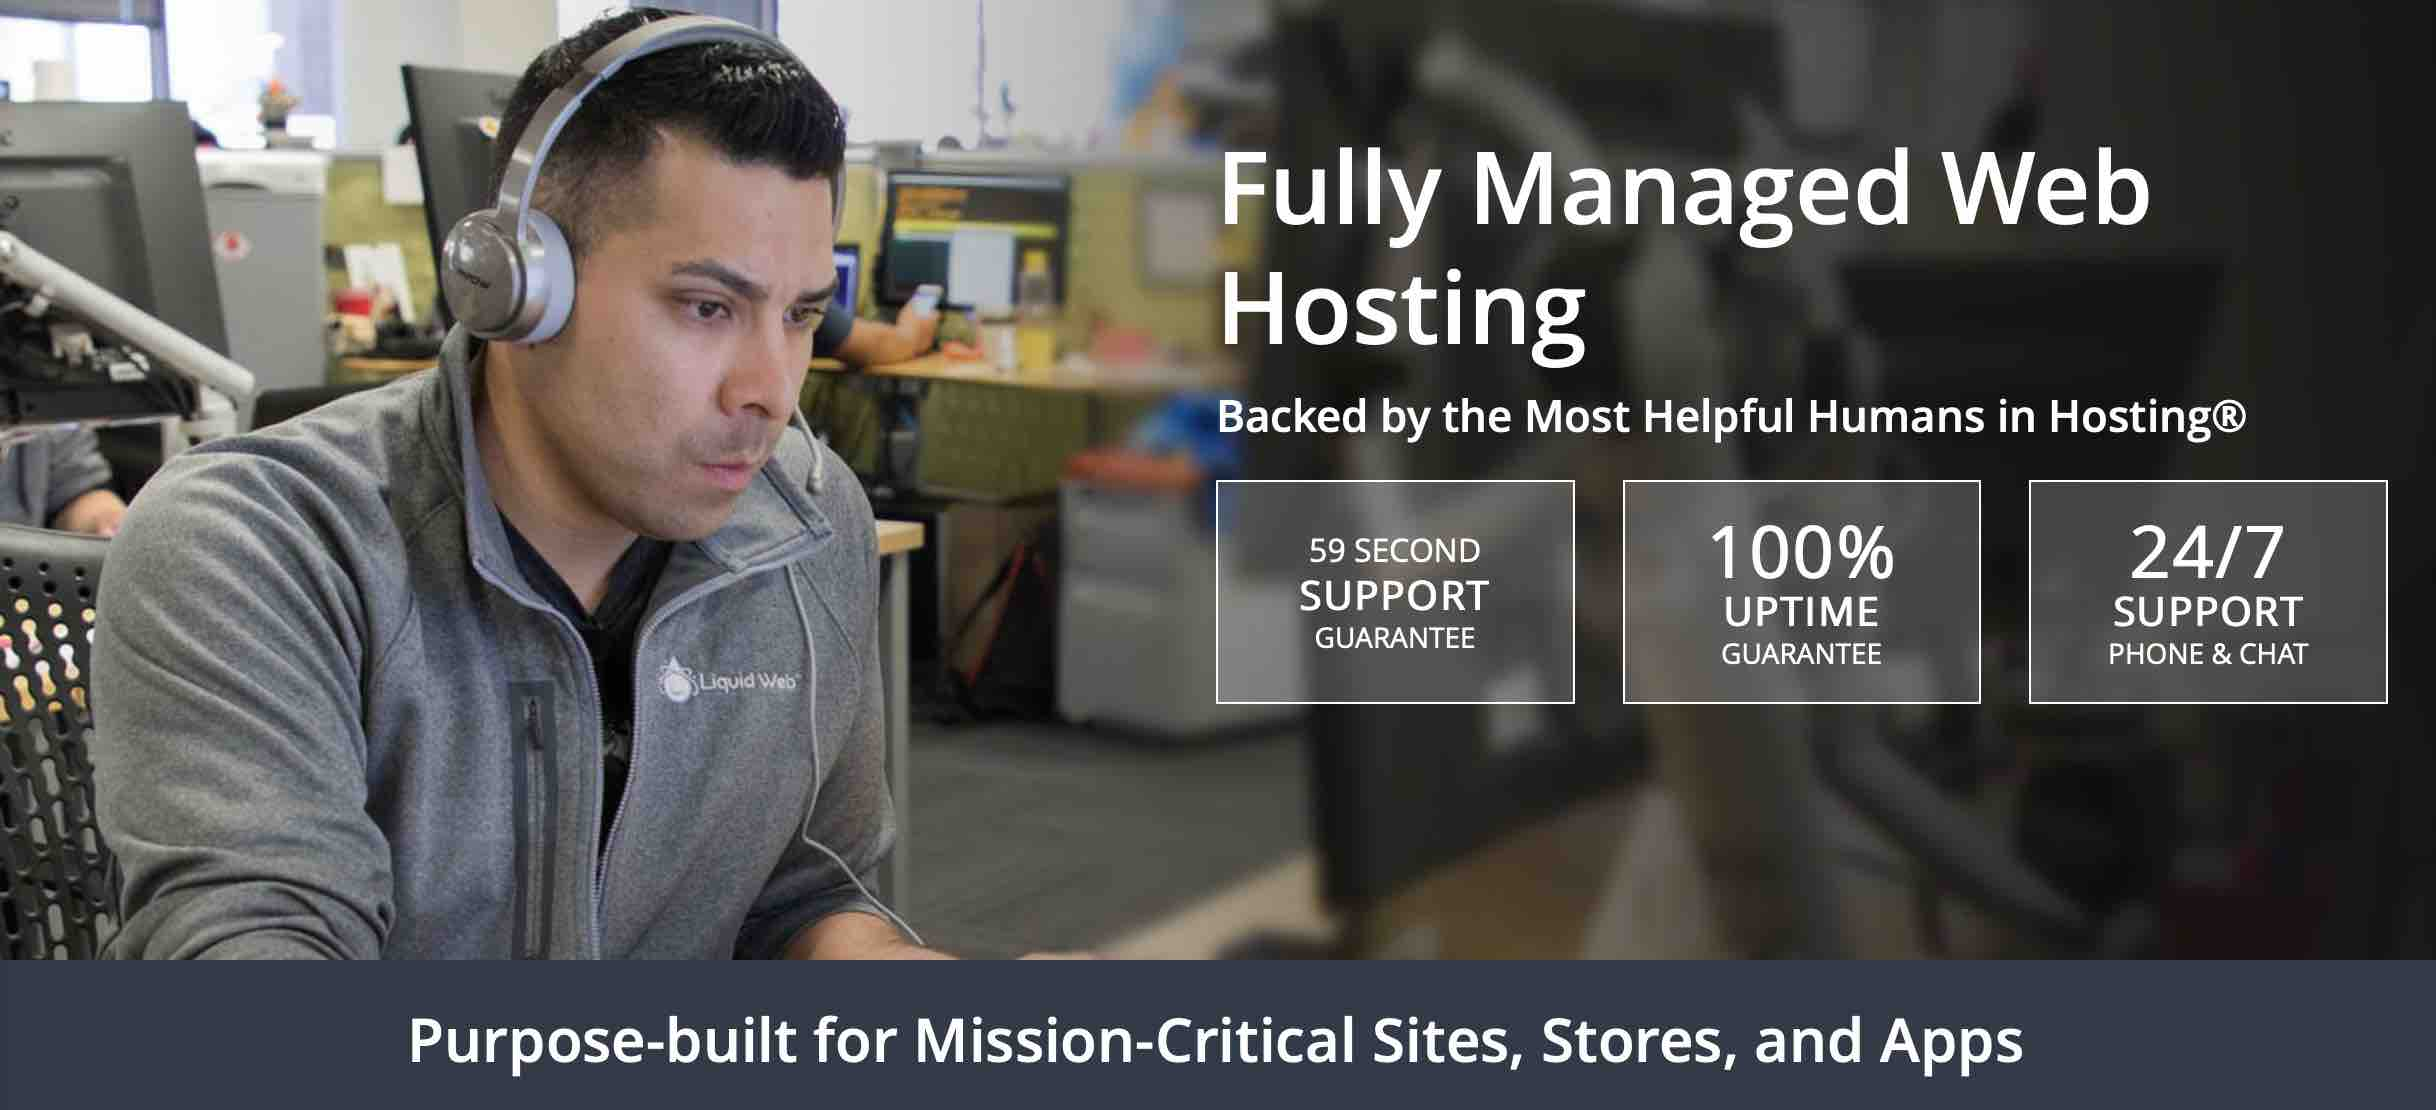 Fully Managed Web Hosting